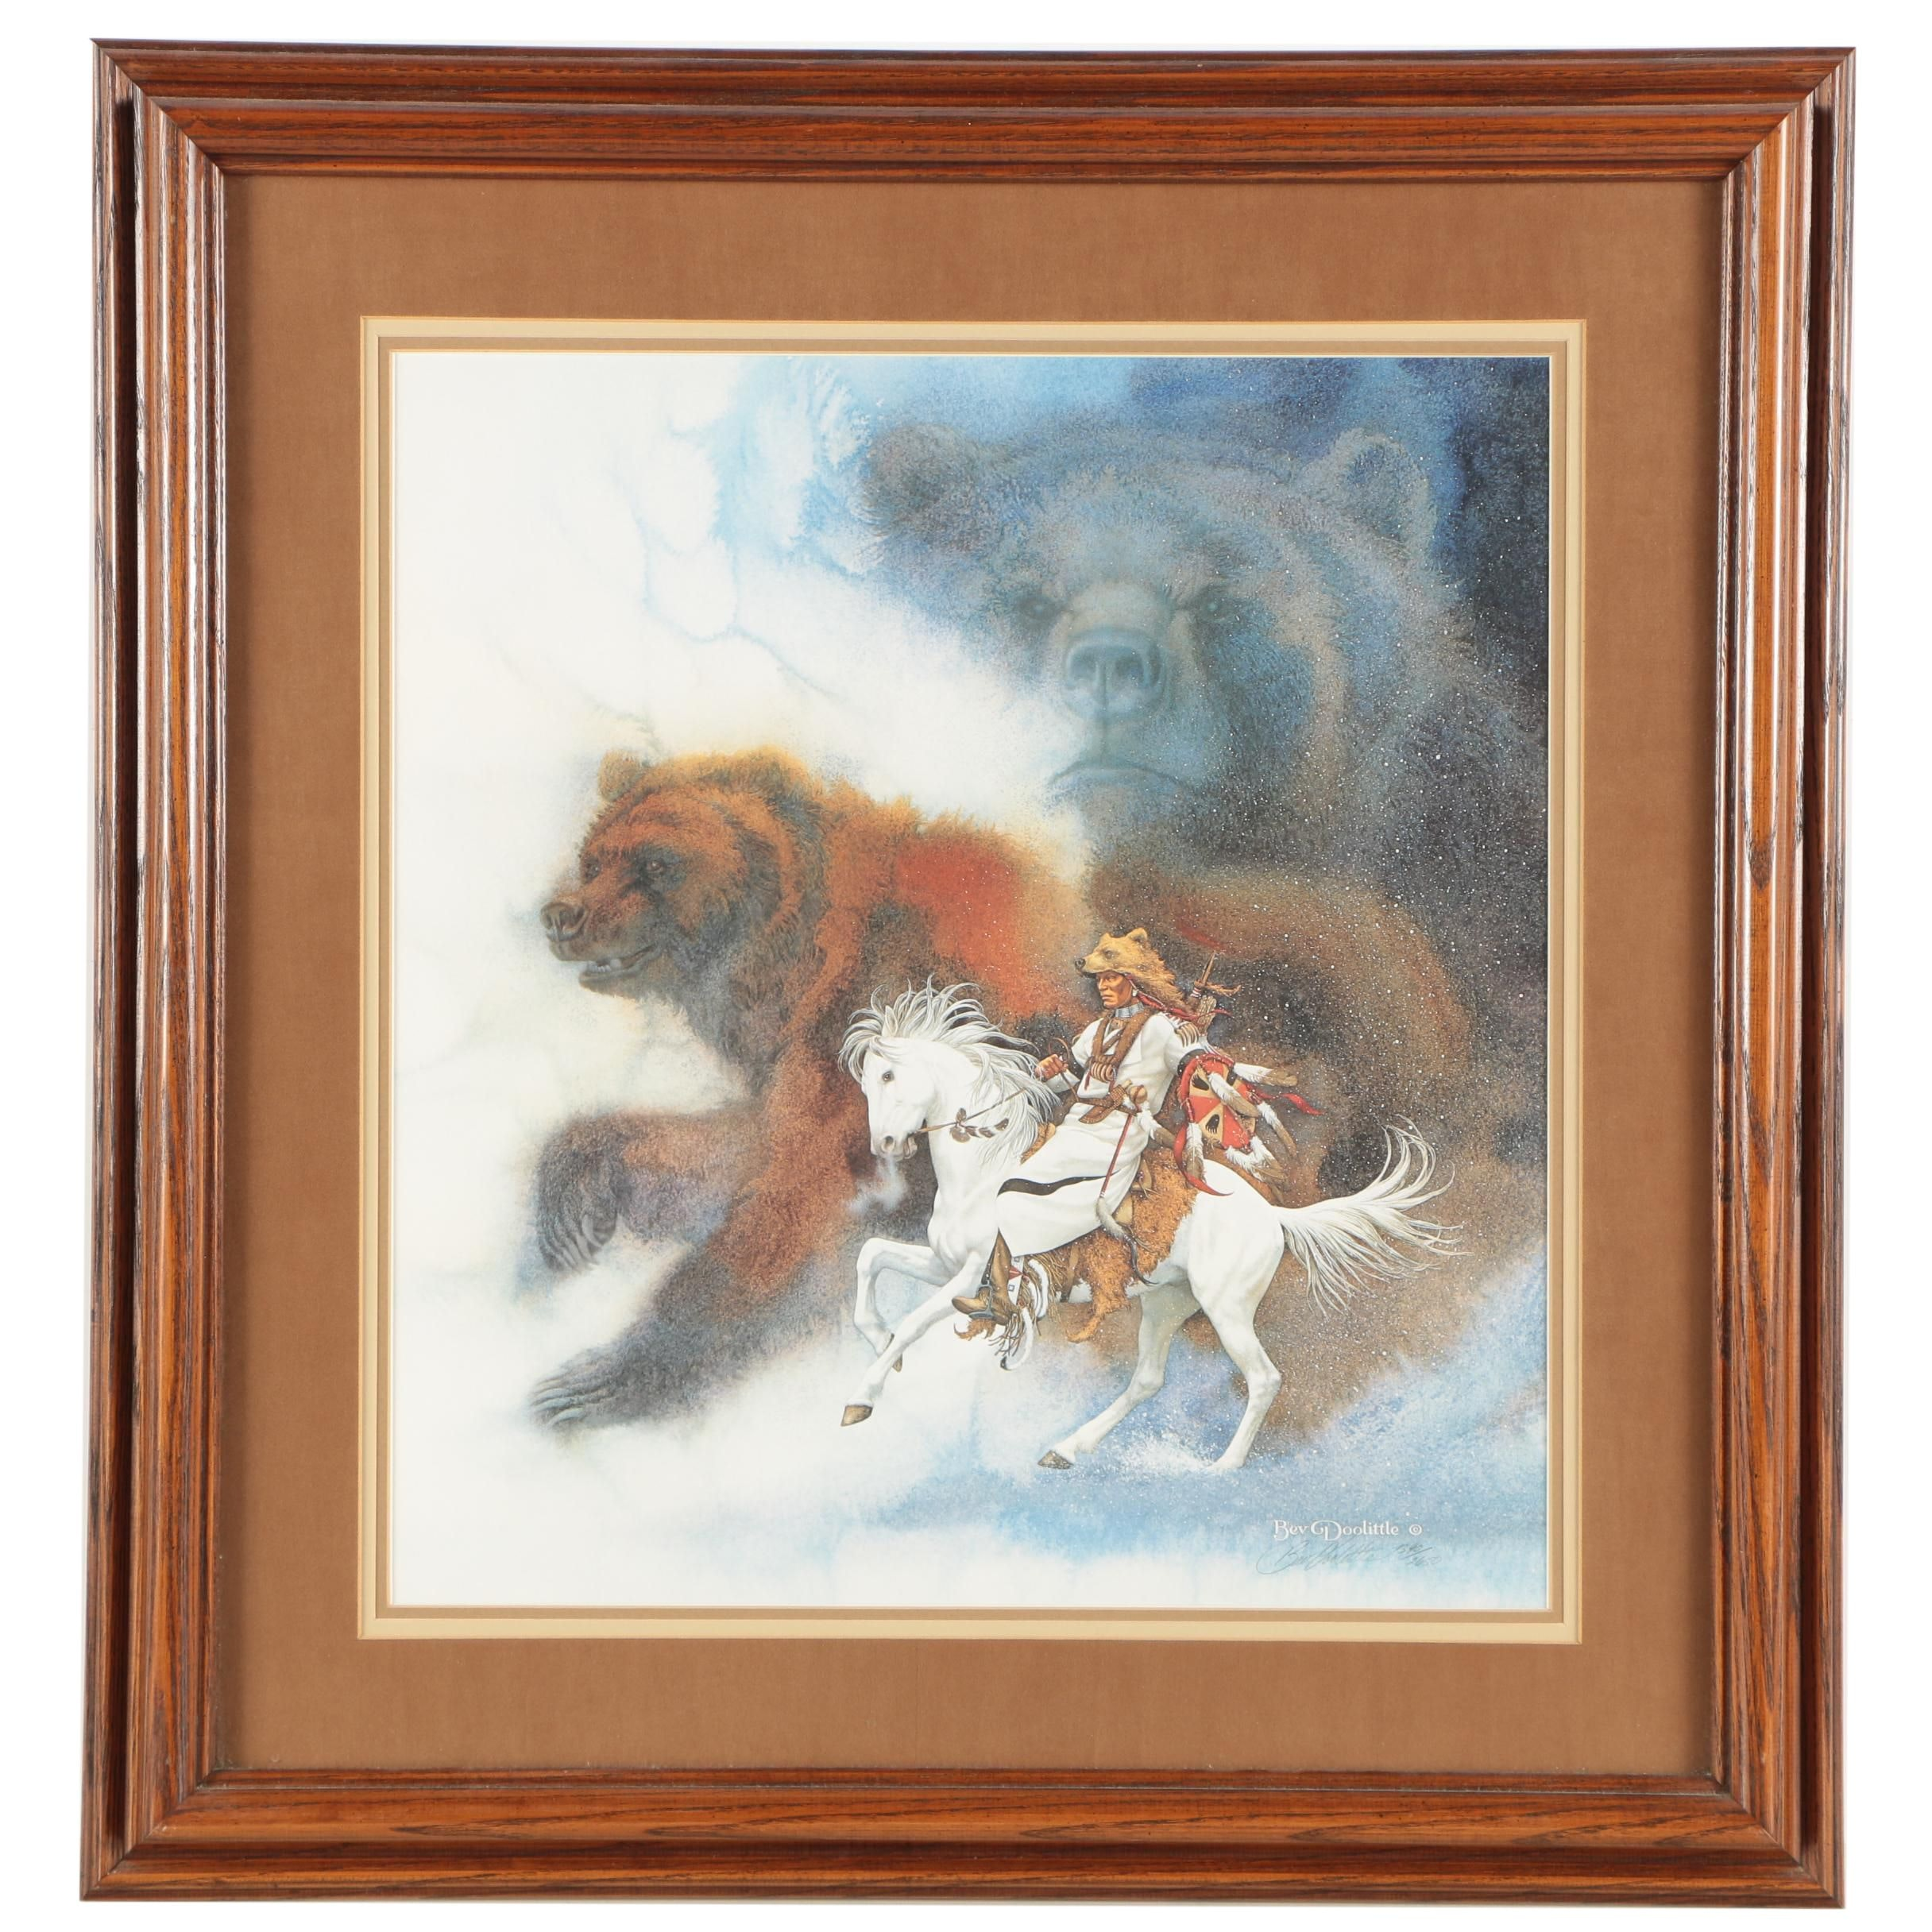 """Bev Doolittle Limited Edition Offset Lithograph """"The Bears of the Blackfeet"""""""